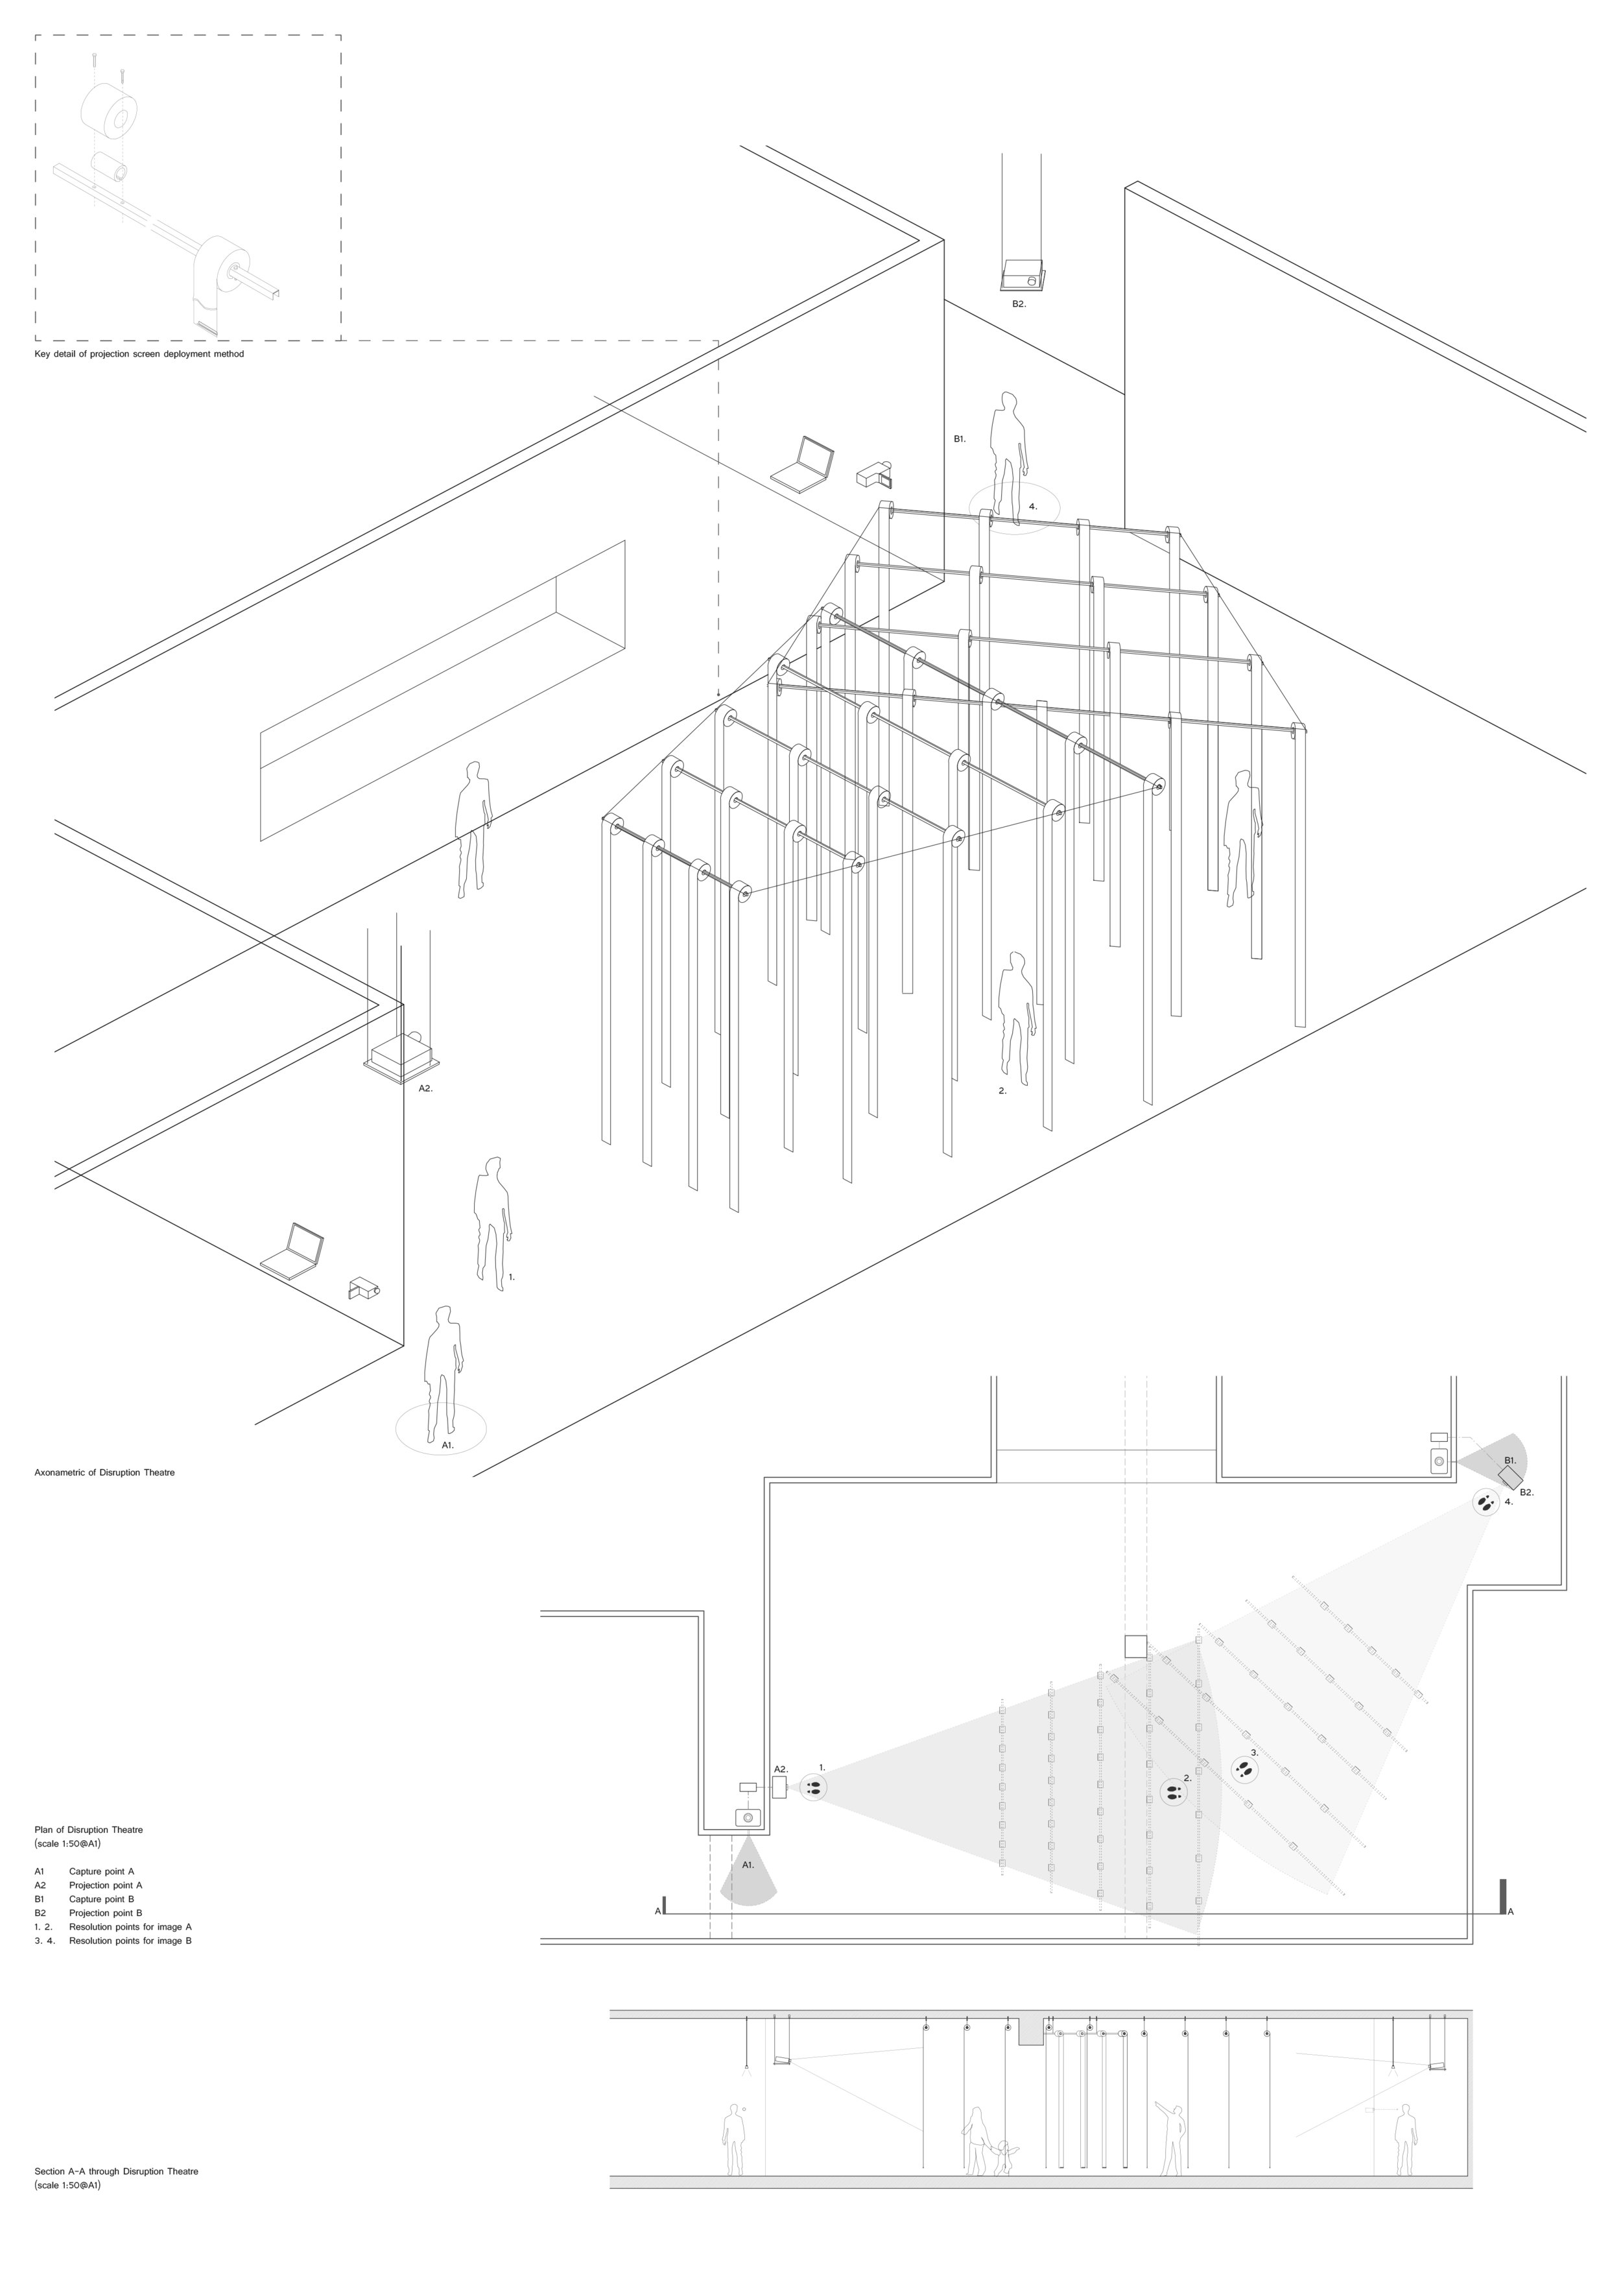 Schematic Drawing By Hee Chan Park